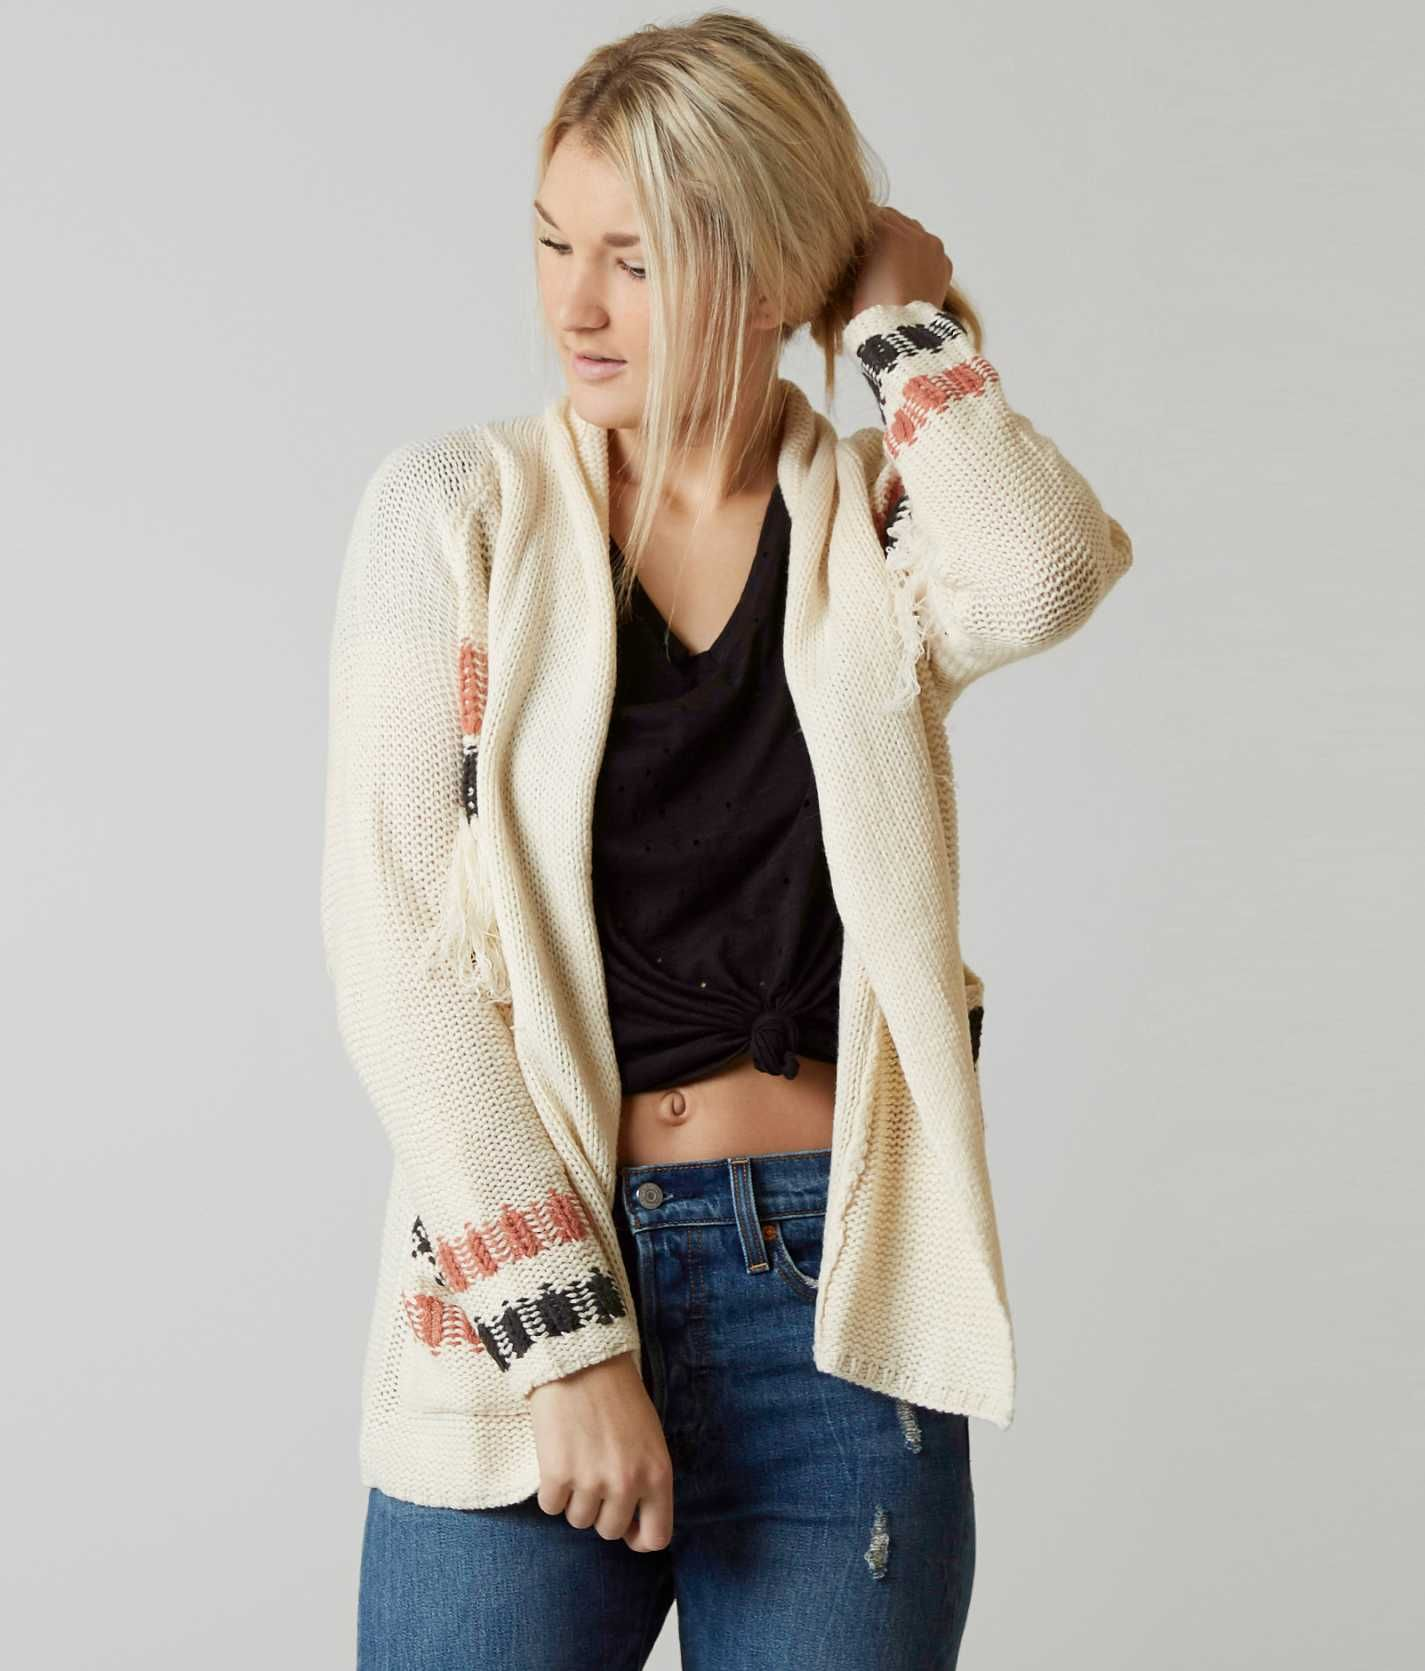 Billabong In Stitches Cardigan Sweater - Women's Sweaters in White ...